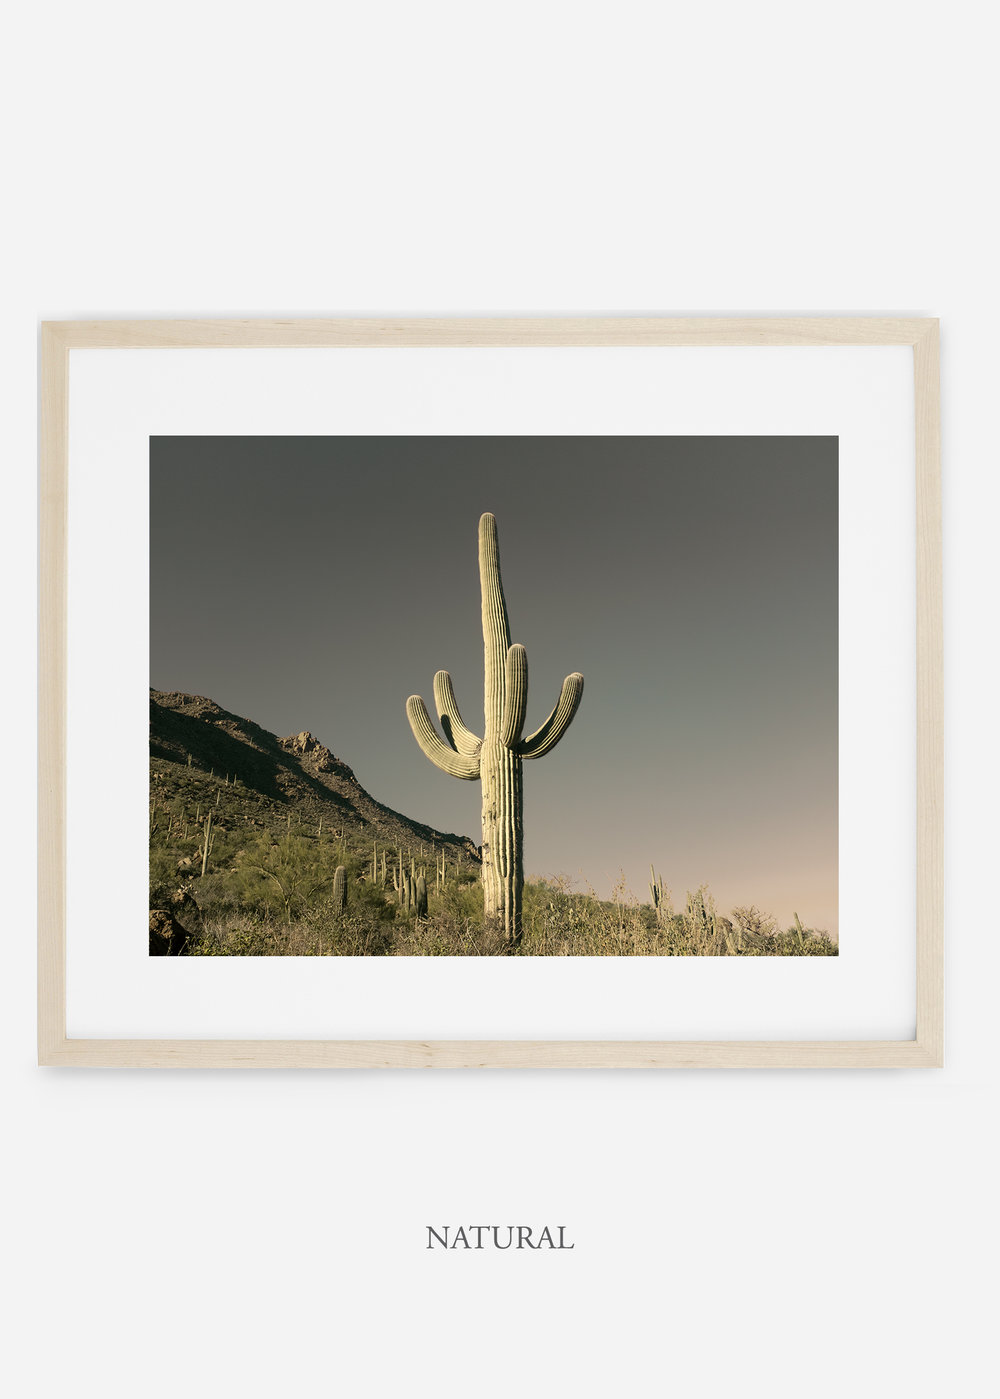 naturalframe-saguaroNo.19-wildercalifornia-art-wallart-cactusprint-homedecor-prints-arizona-botanical-artwork-interiordesign.jpg